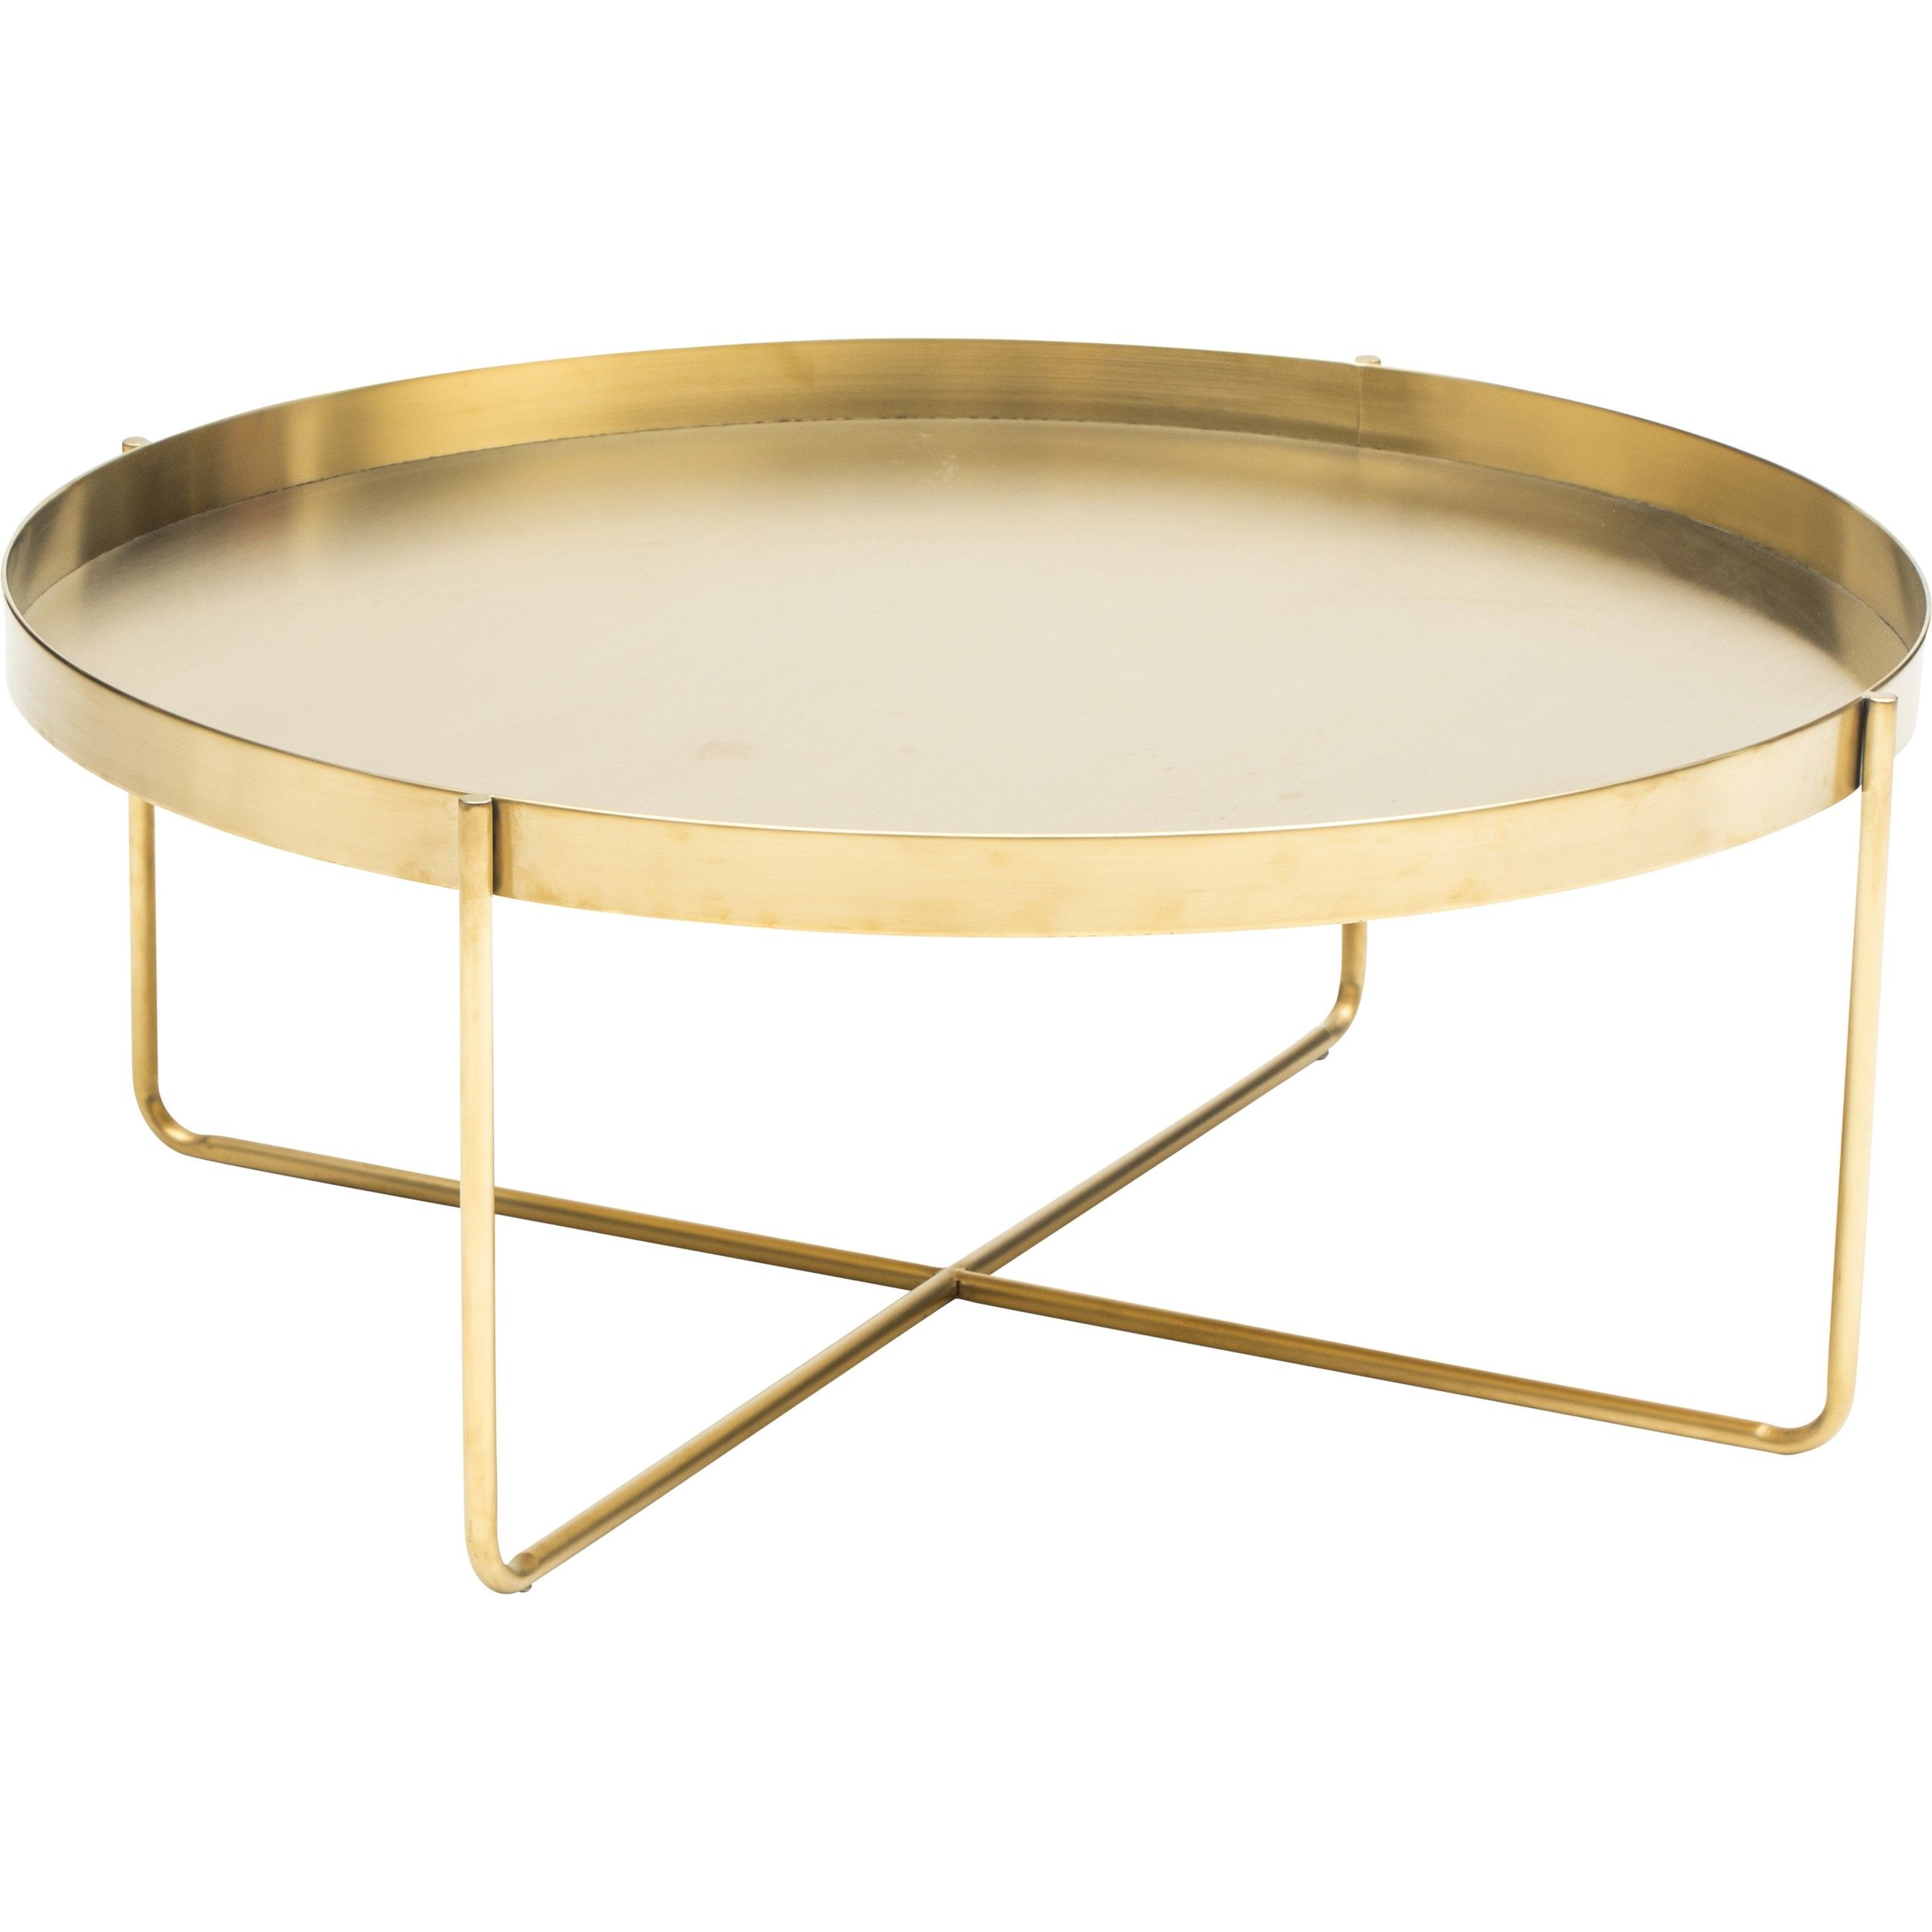 Gaultier round coffee table gold highfashionhome client ideas pinterest rounding coffee Brass round coffee table